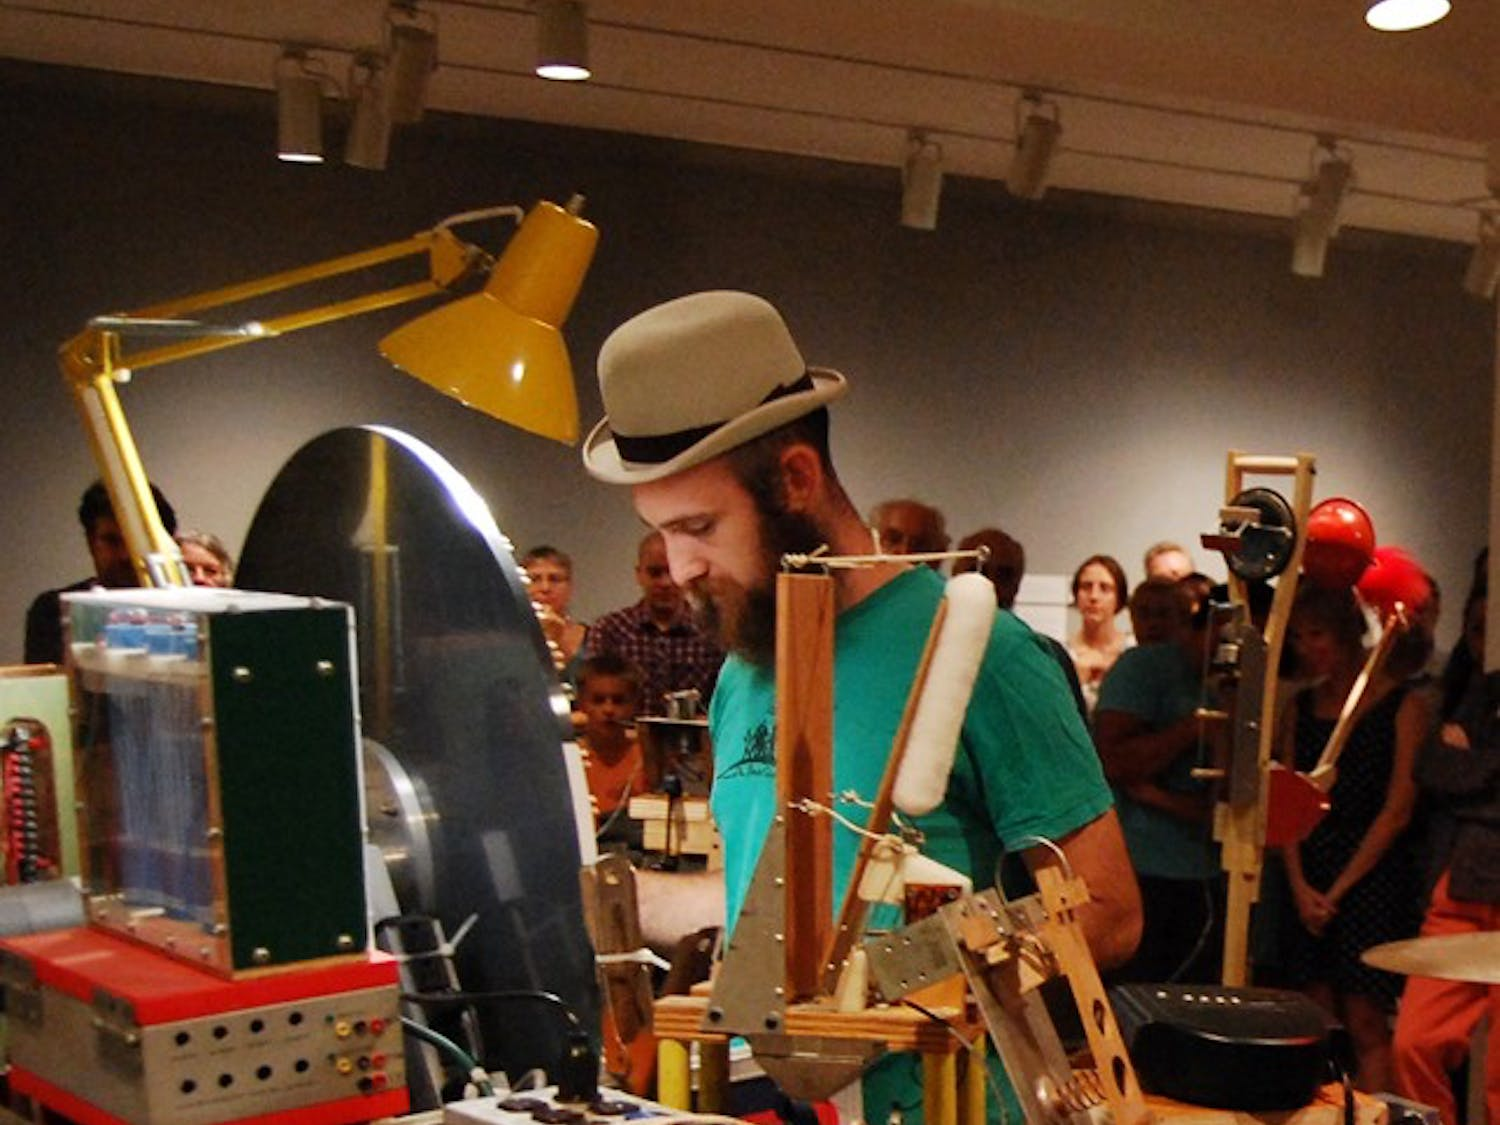 Mark Dixon of the alternative home-made music project INVISIBLE performs for a crowd at Ackland Art Museum on Thursday night.